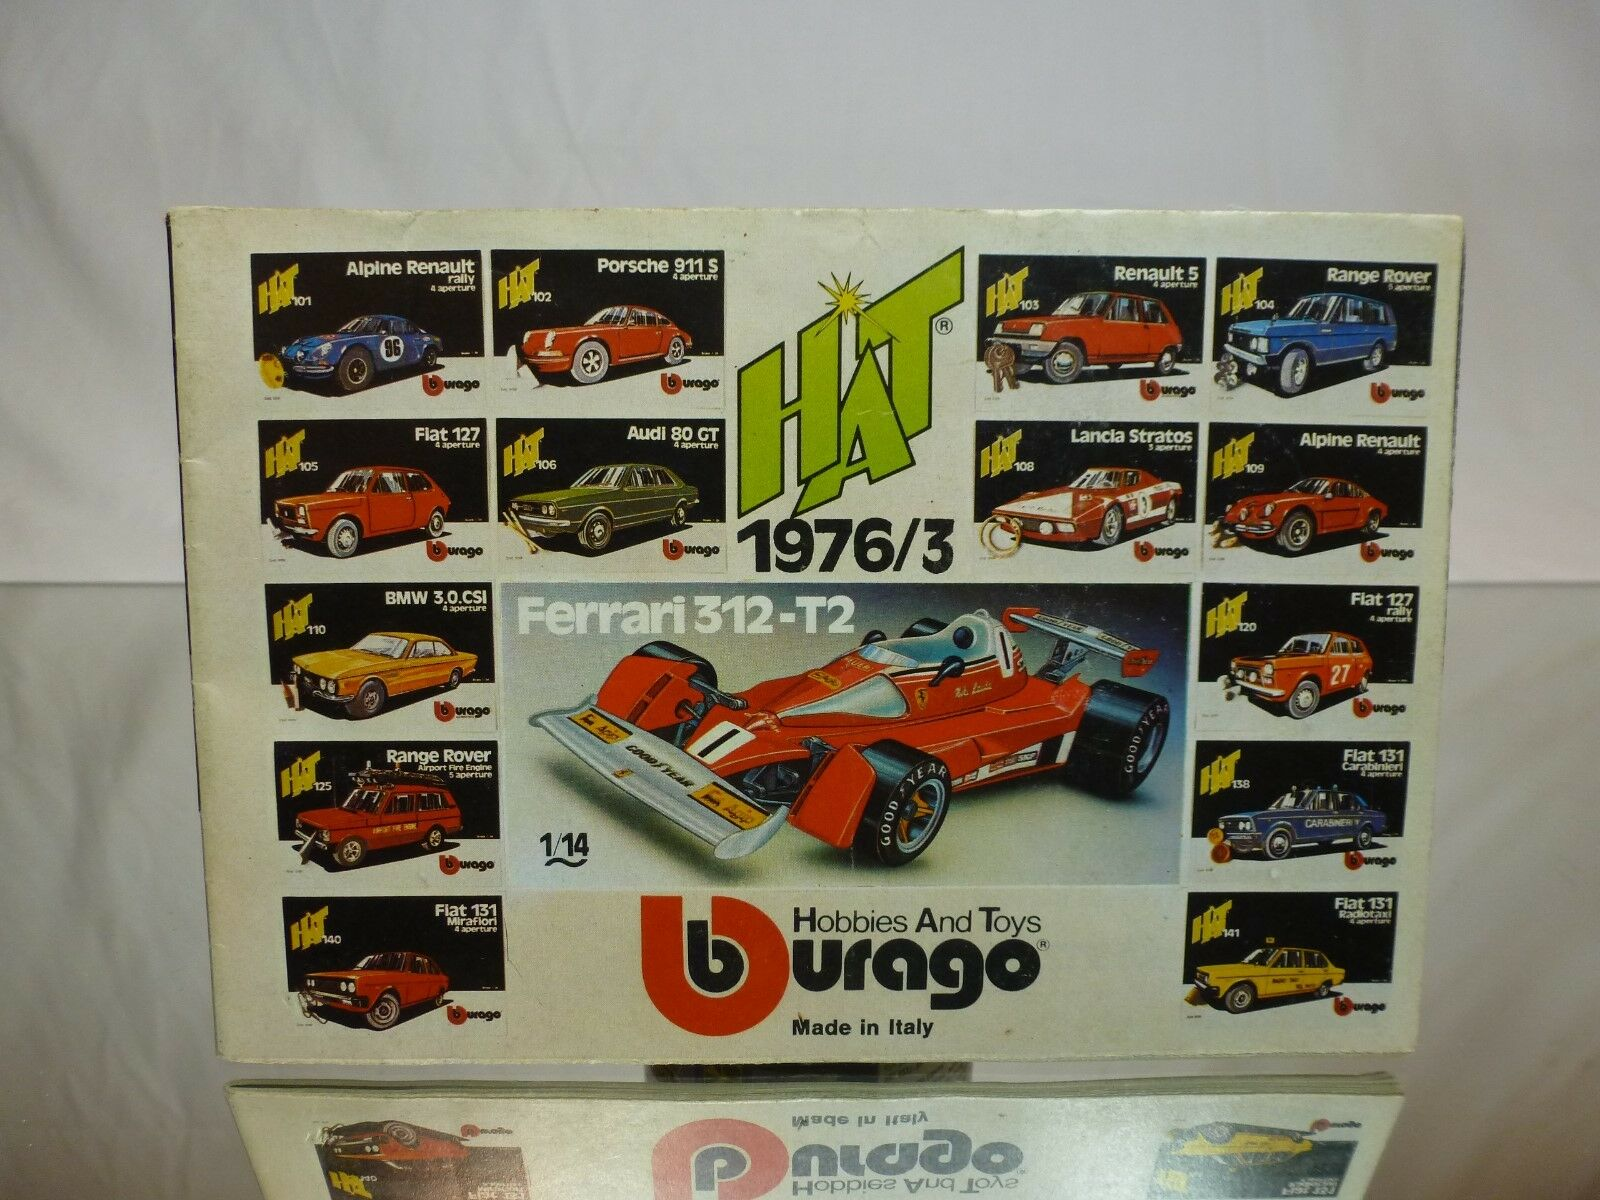 BBURAGO CATALOG FLYER - HAT 1976 3   - NEAR MINT CONDITION - EXTREMELY RARE